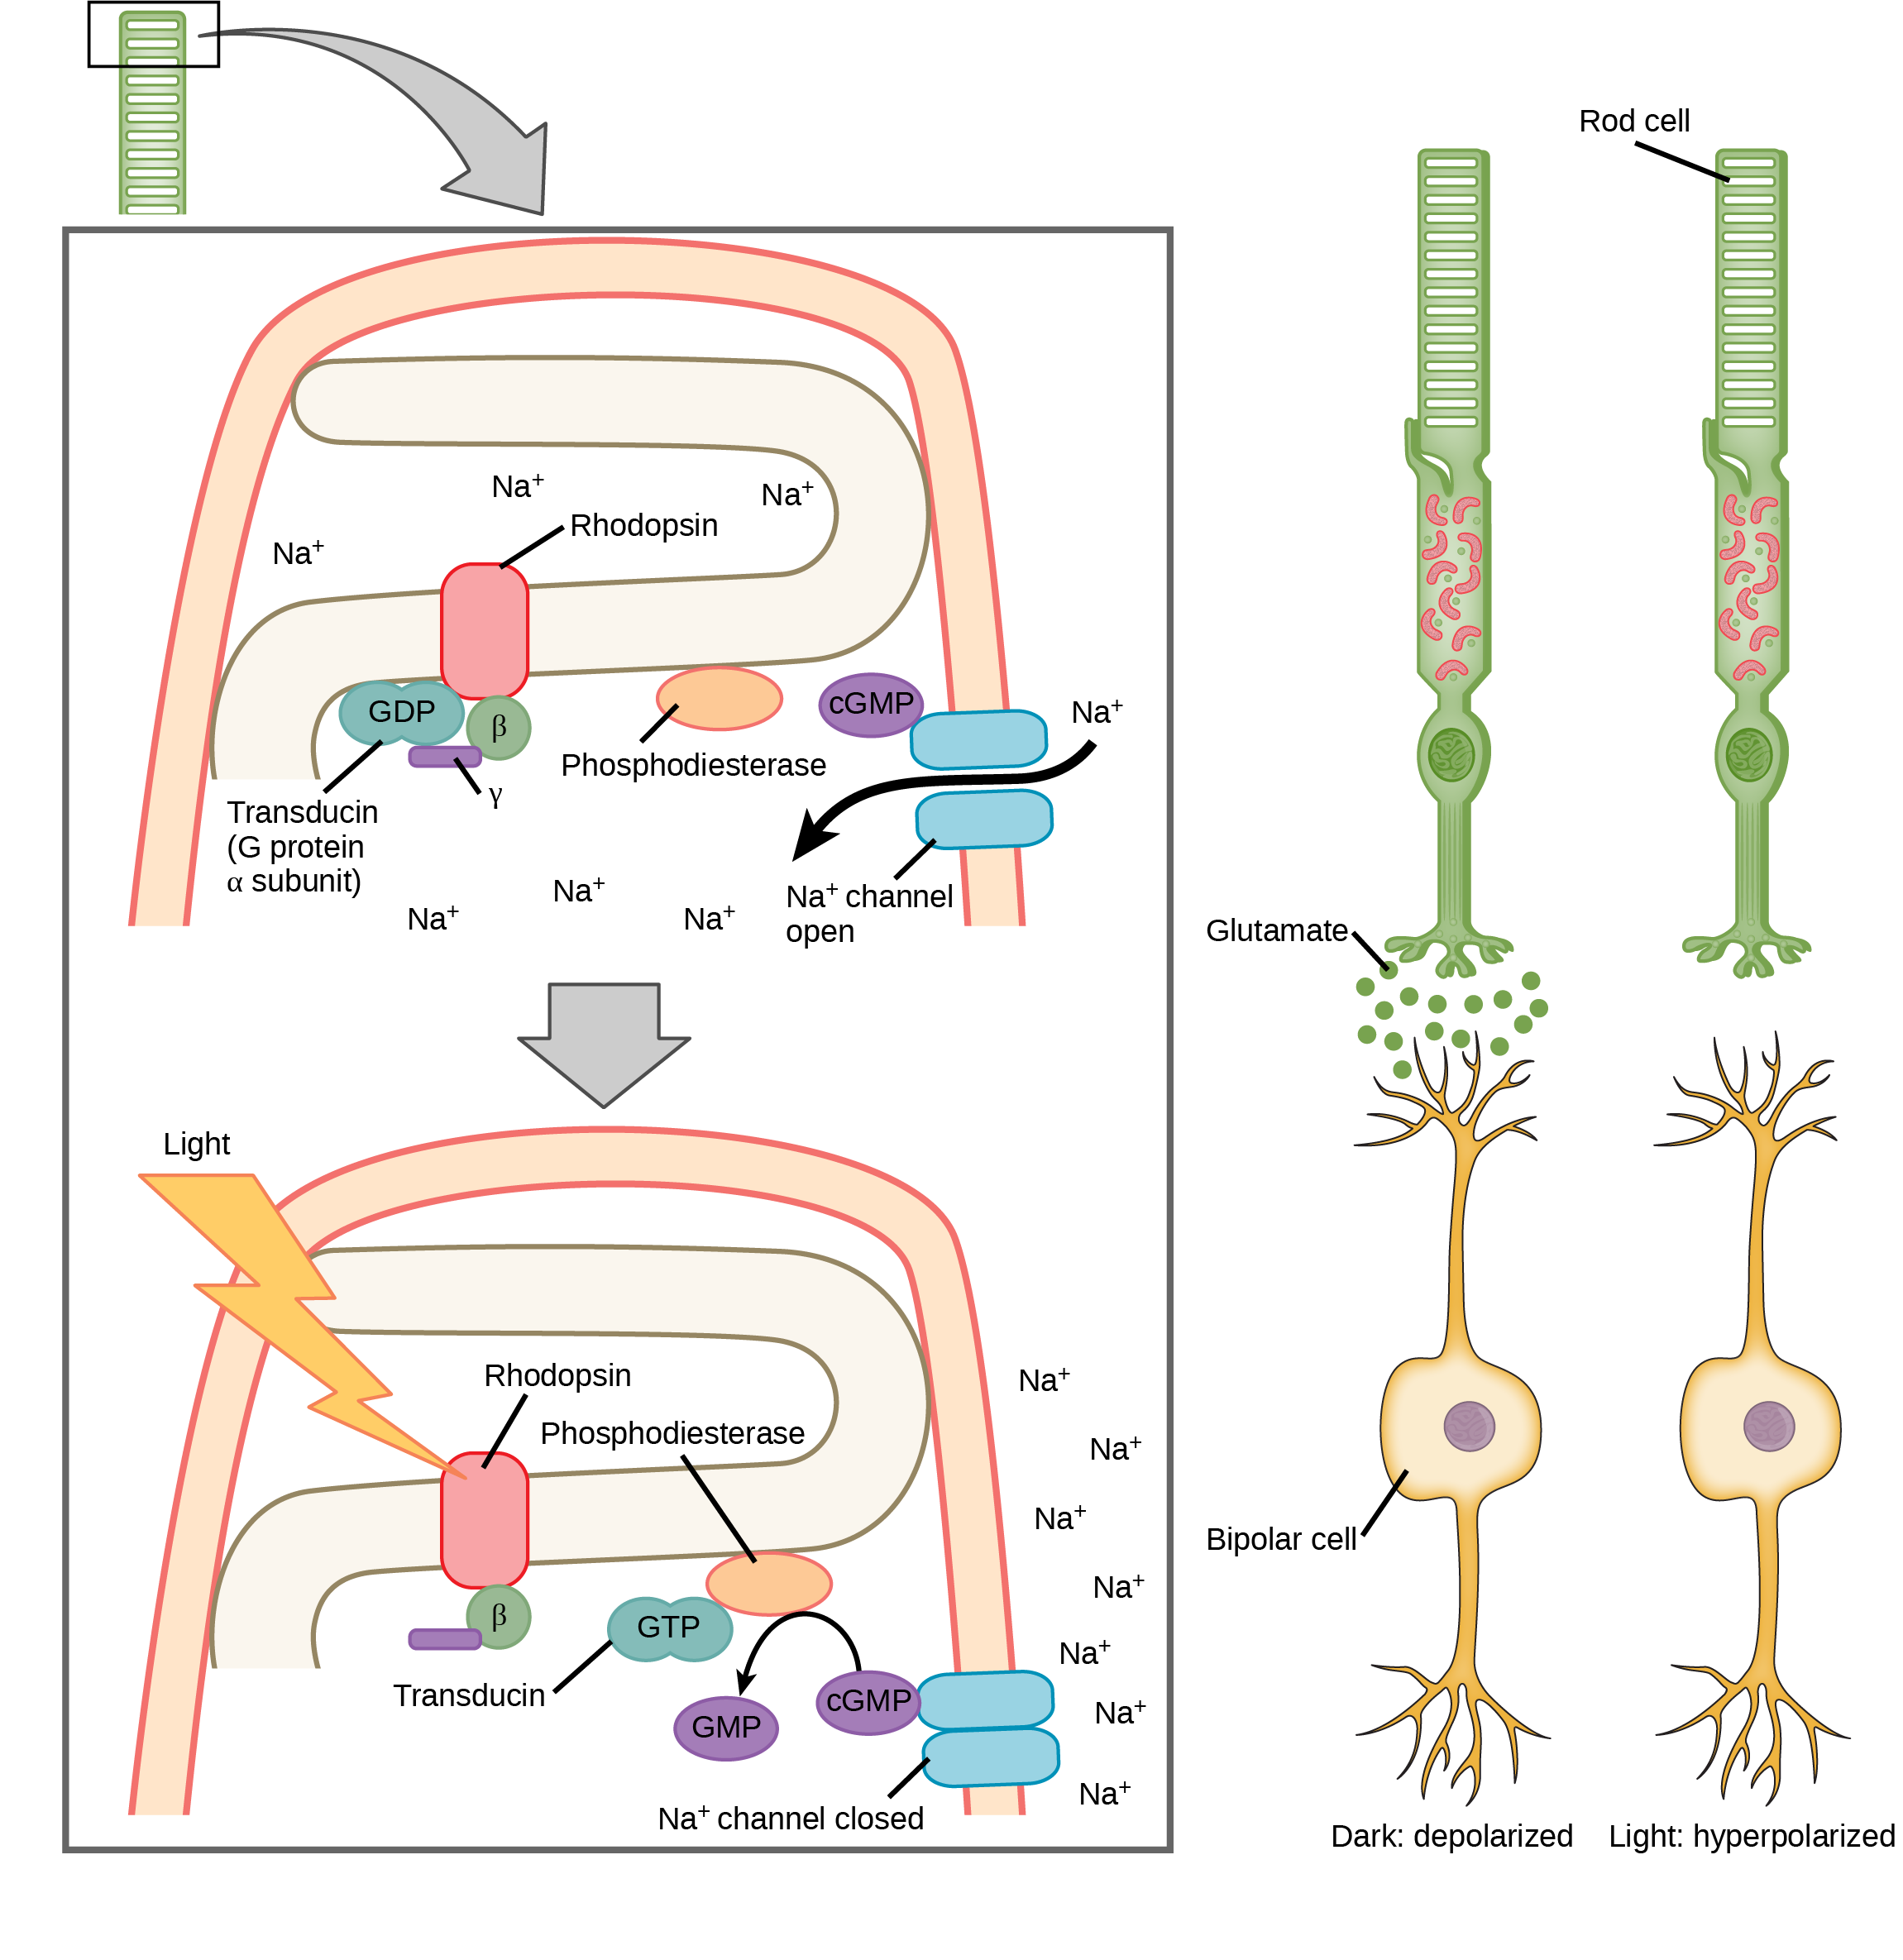 Illustration A shows the signal transduction pathway for rhodopsin, which is located in internal membranes at the top of rod cells. When light strikes rhodopsin, a G protein called transducing is activated. Transducin has three subunits, alpha, beta and gamma. Upon activation, GDP on the alpha subunit is replaced with GTP. The subunit dissociates, and binds phosphodiesterase. Phosphodiesterase, in turn, converts cGMP to GMP, which closes sodium ion channels. As a result, sodium can no longer enter the cell, and the membrane becomes hyperpolarized. Illustration b shows that the tall, thin rod cell is stacked on top of a bipolar nerve cell. In the dark the membrane is depolarized, and glutamate is released from the rod cell to the axon terminal of the bipolar cell. In the light, no glutamate is released.